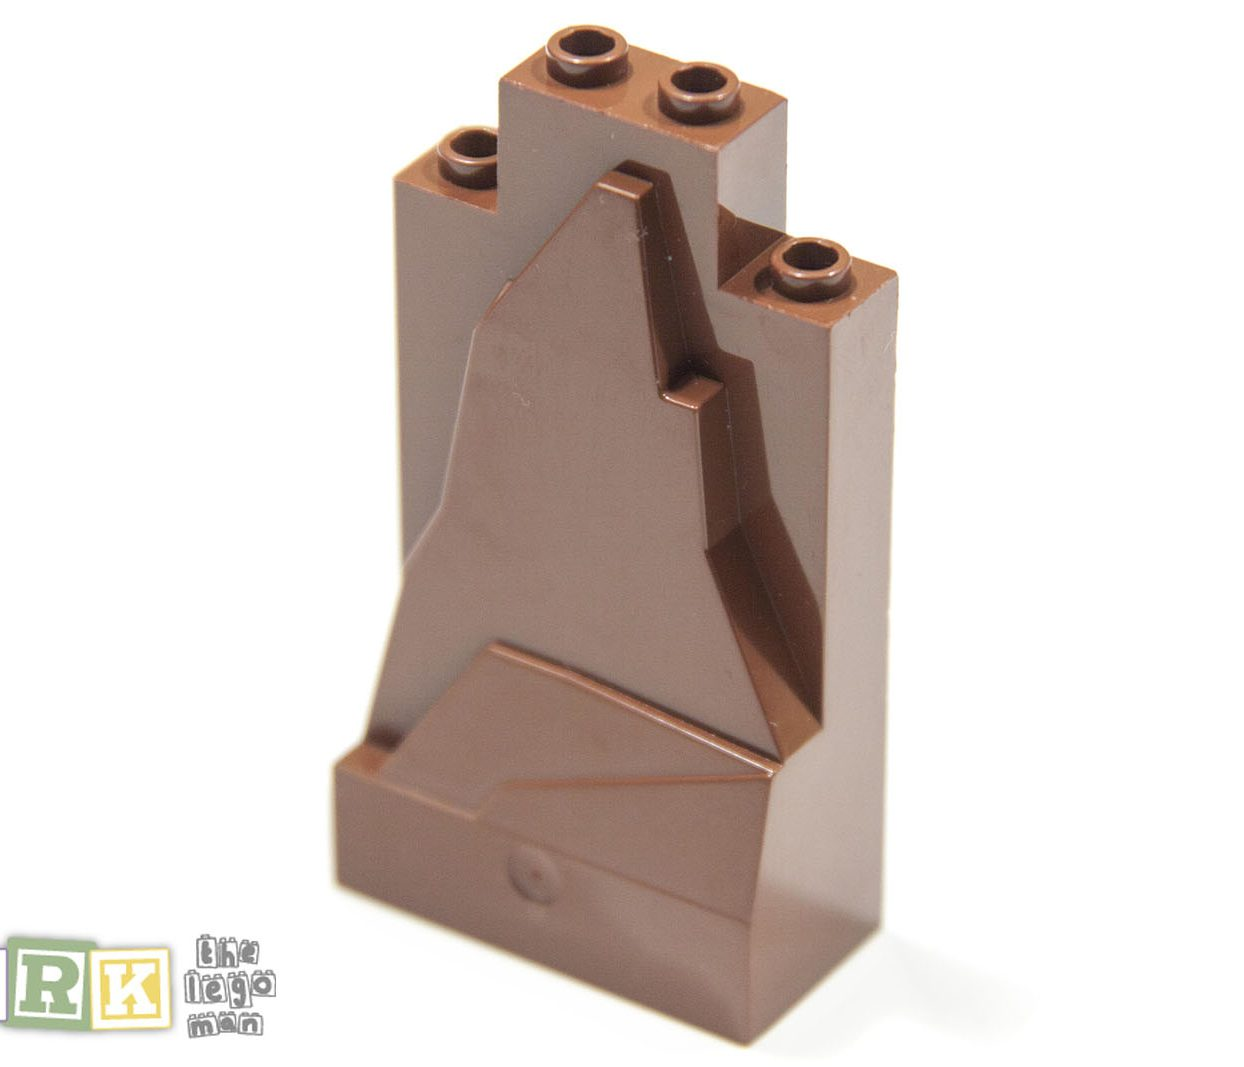 Lego 54782 47847 Panel 2x4x6 Rock Red Brown